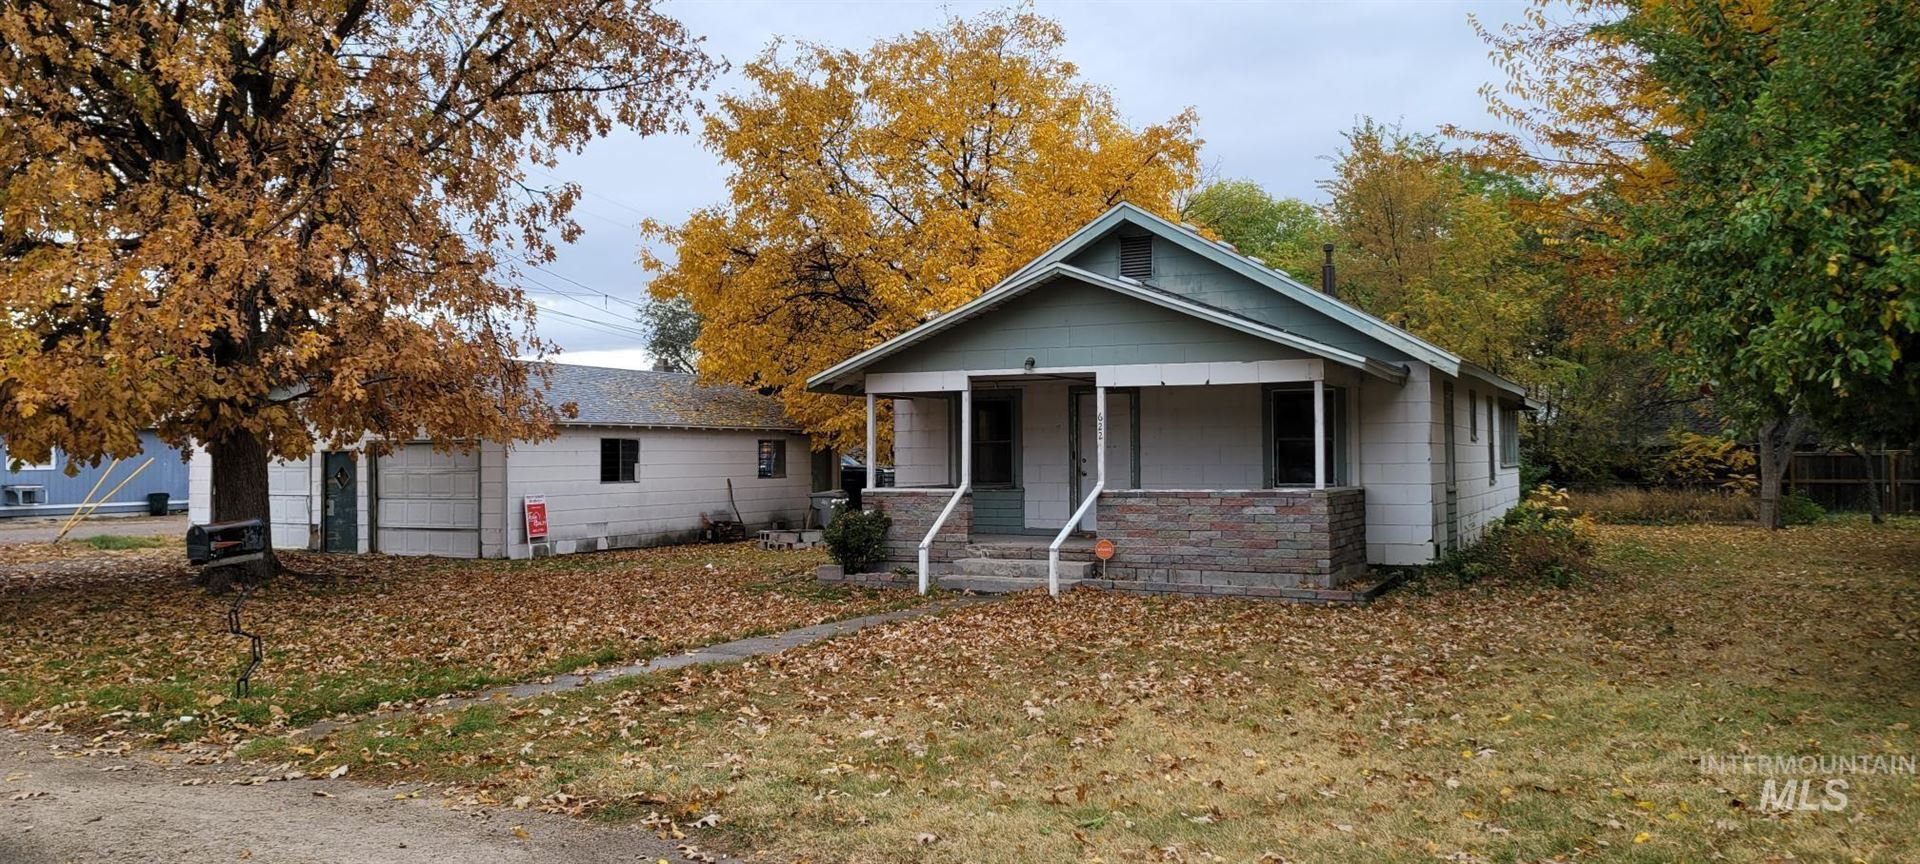 622 Paynter Ave, Caldwell, ID 83605 - MLS#: 98823251